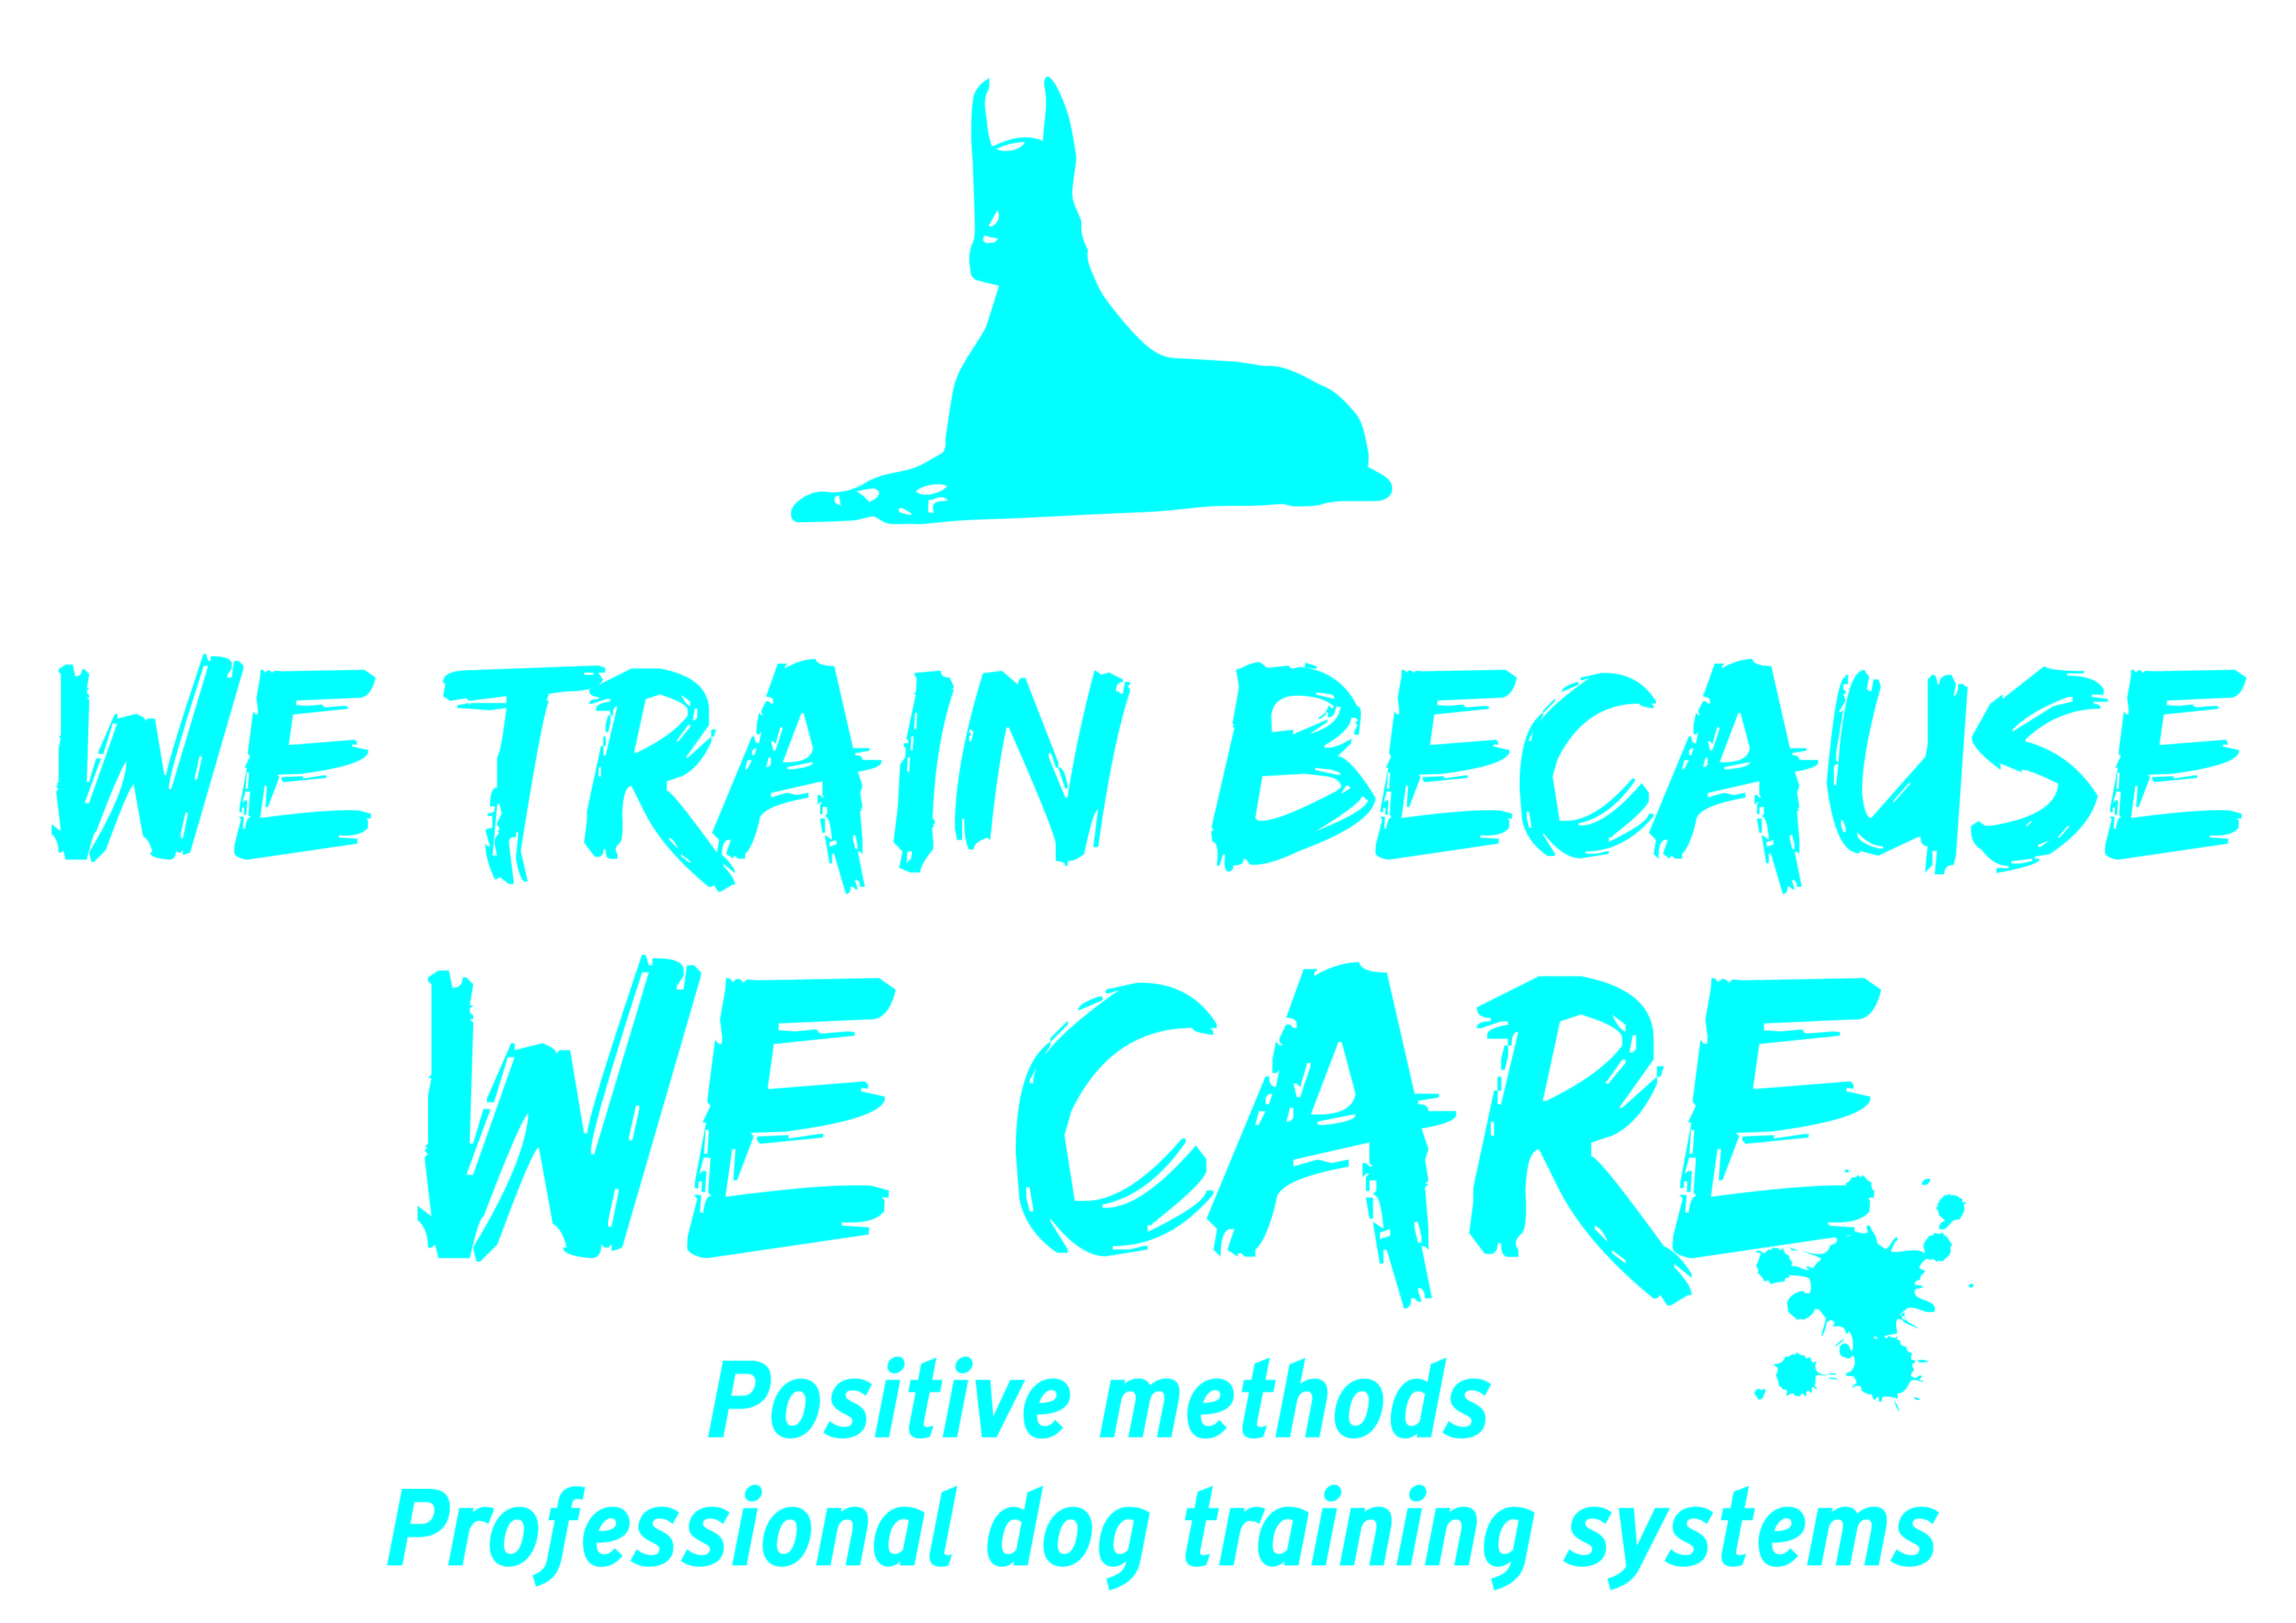 We train because we Care